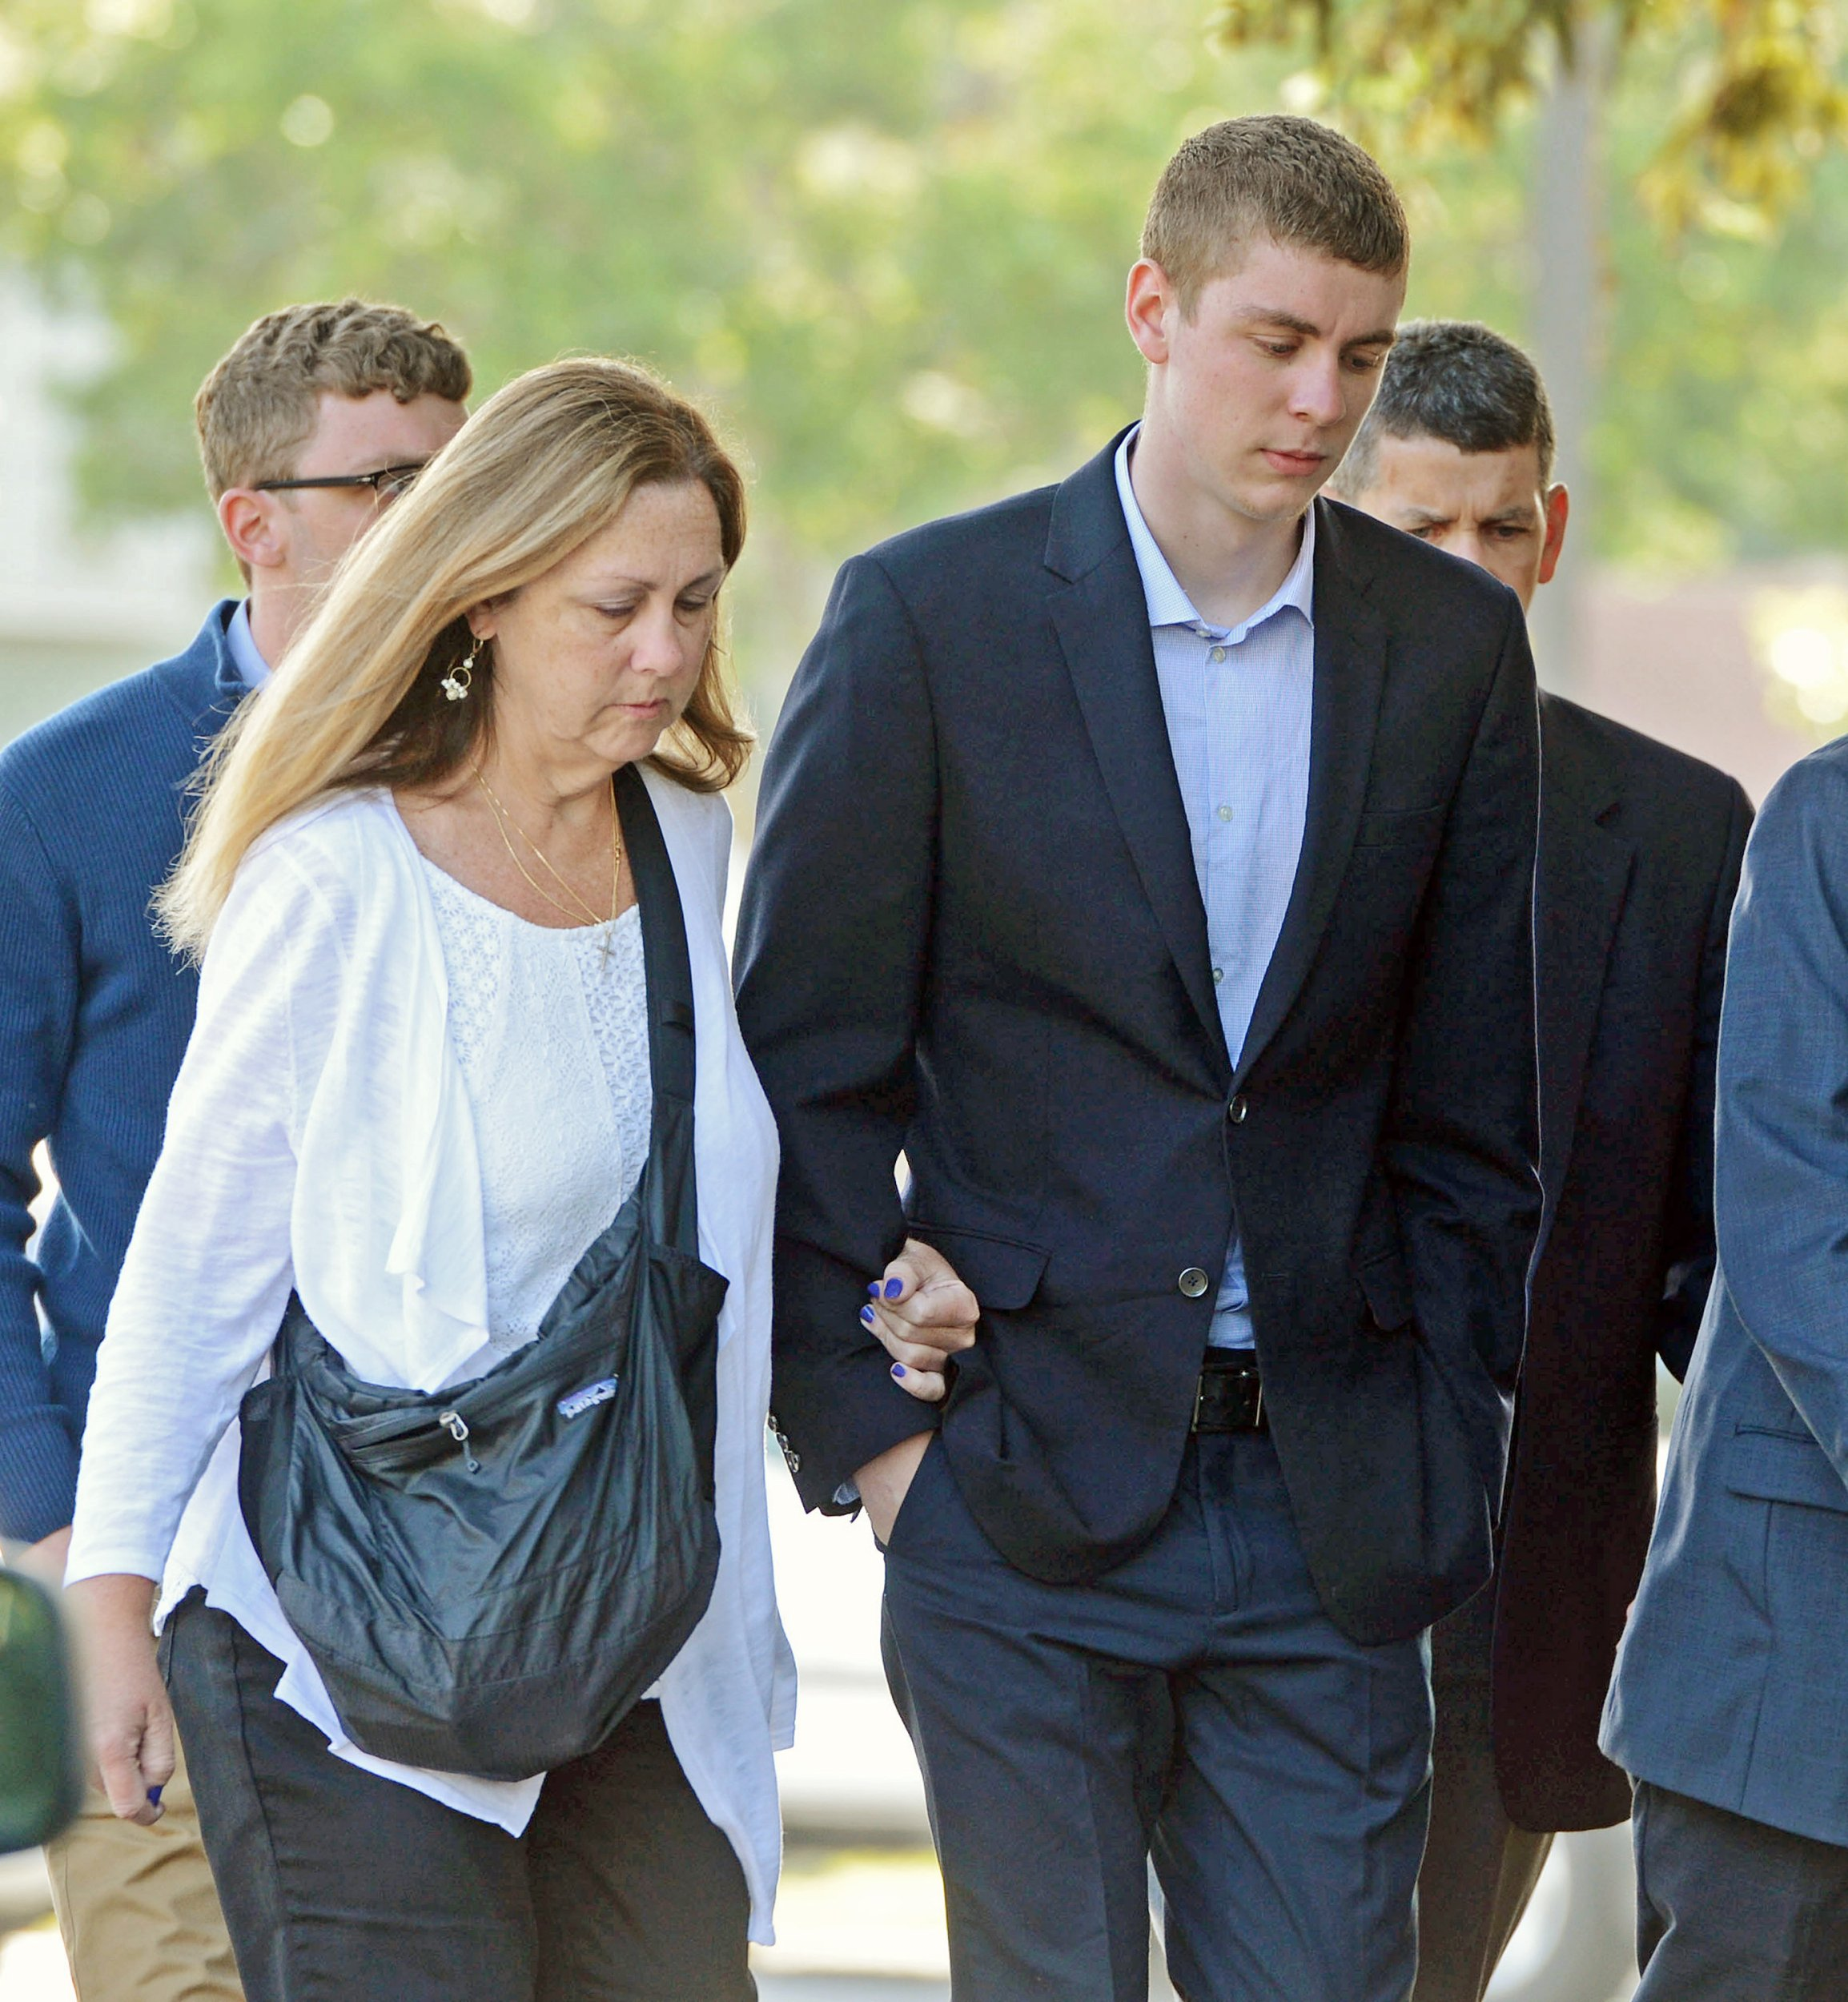 Father of man found guilty of sexual assault defends his son in most crass way possible